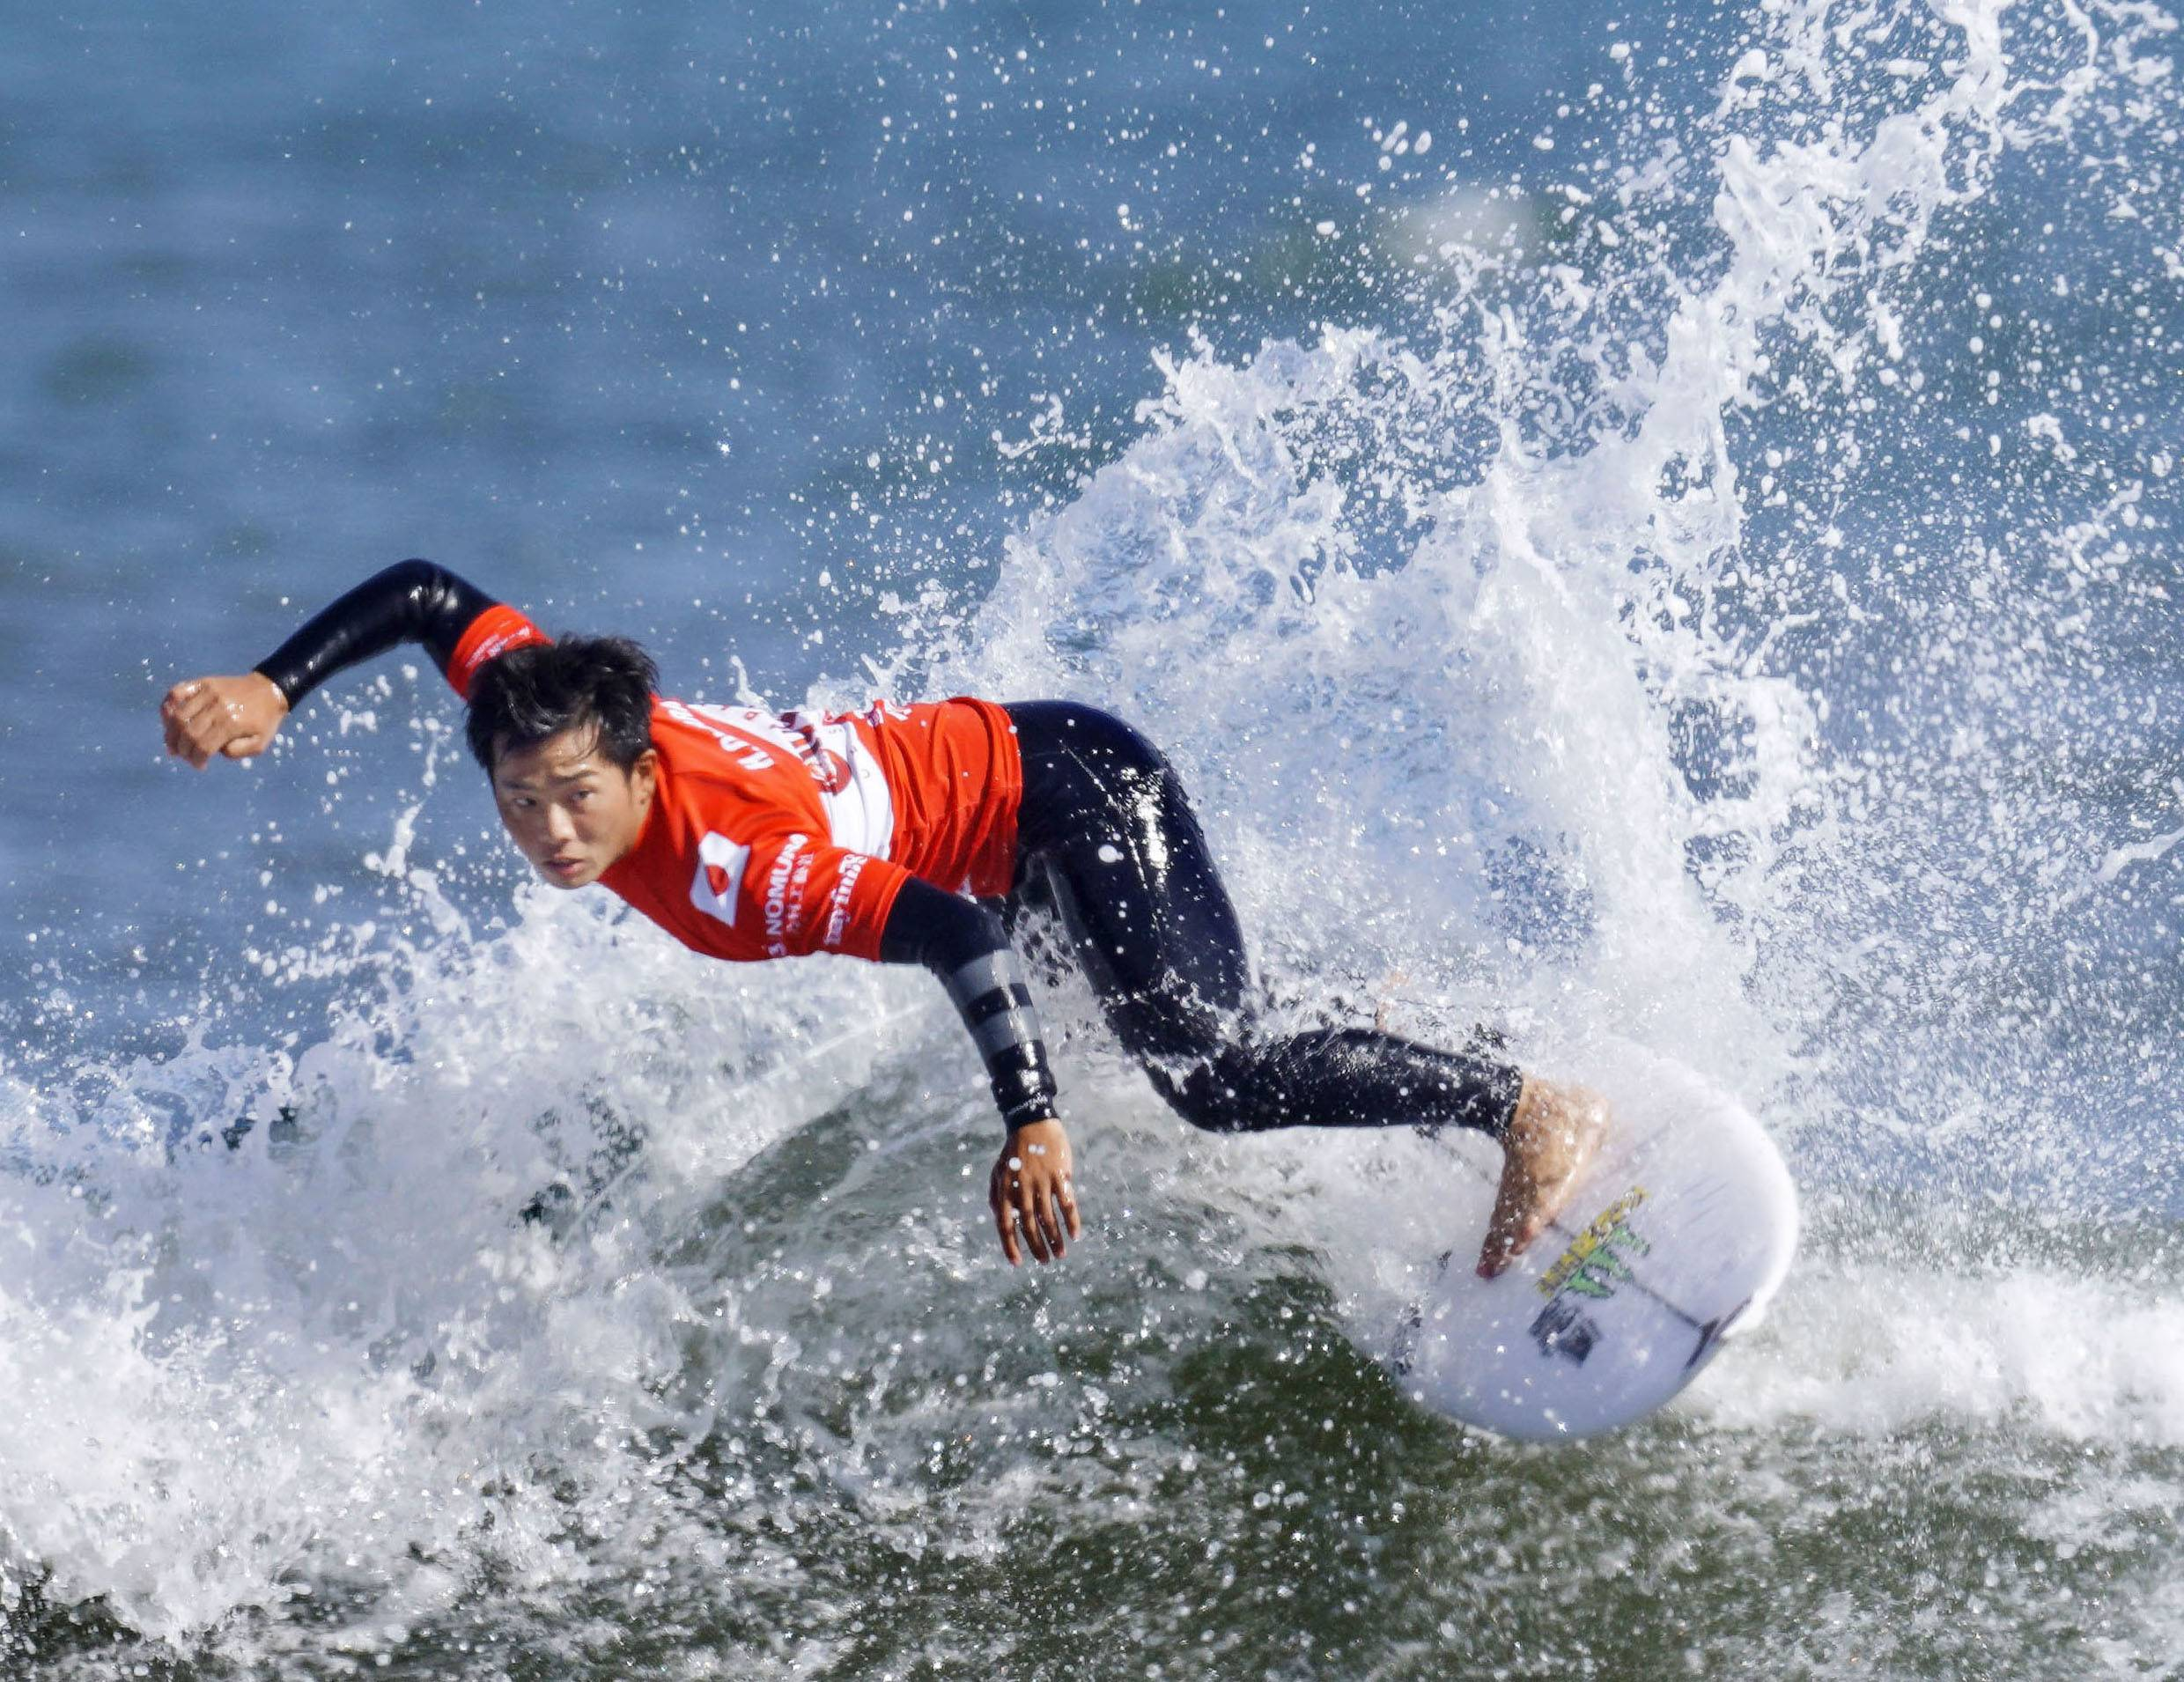 Hiroto Ohara, who was born and raised in Ichinomiya, is one of the 40 surfers to compete in the Tokyo Olympics. | KYODO